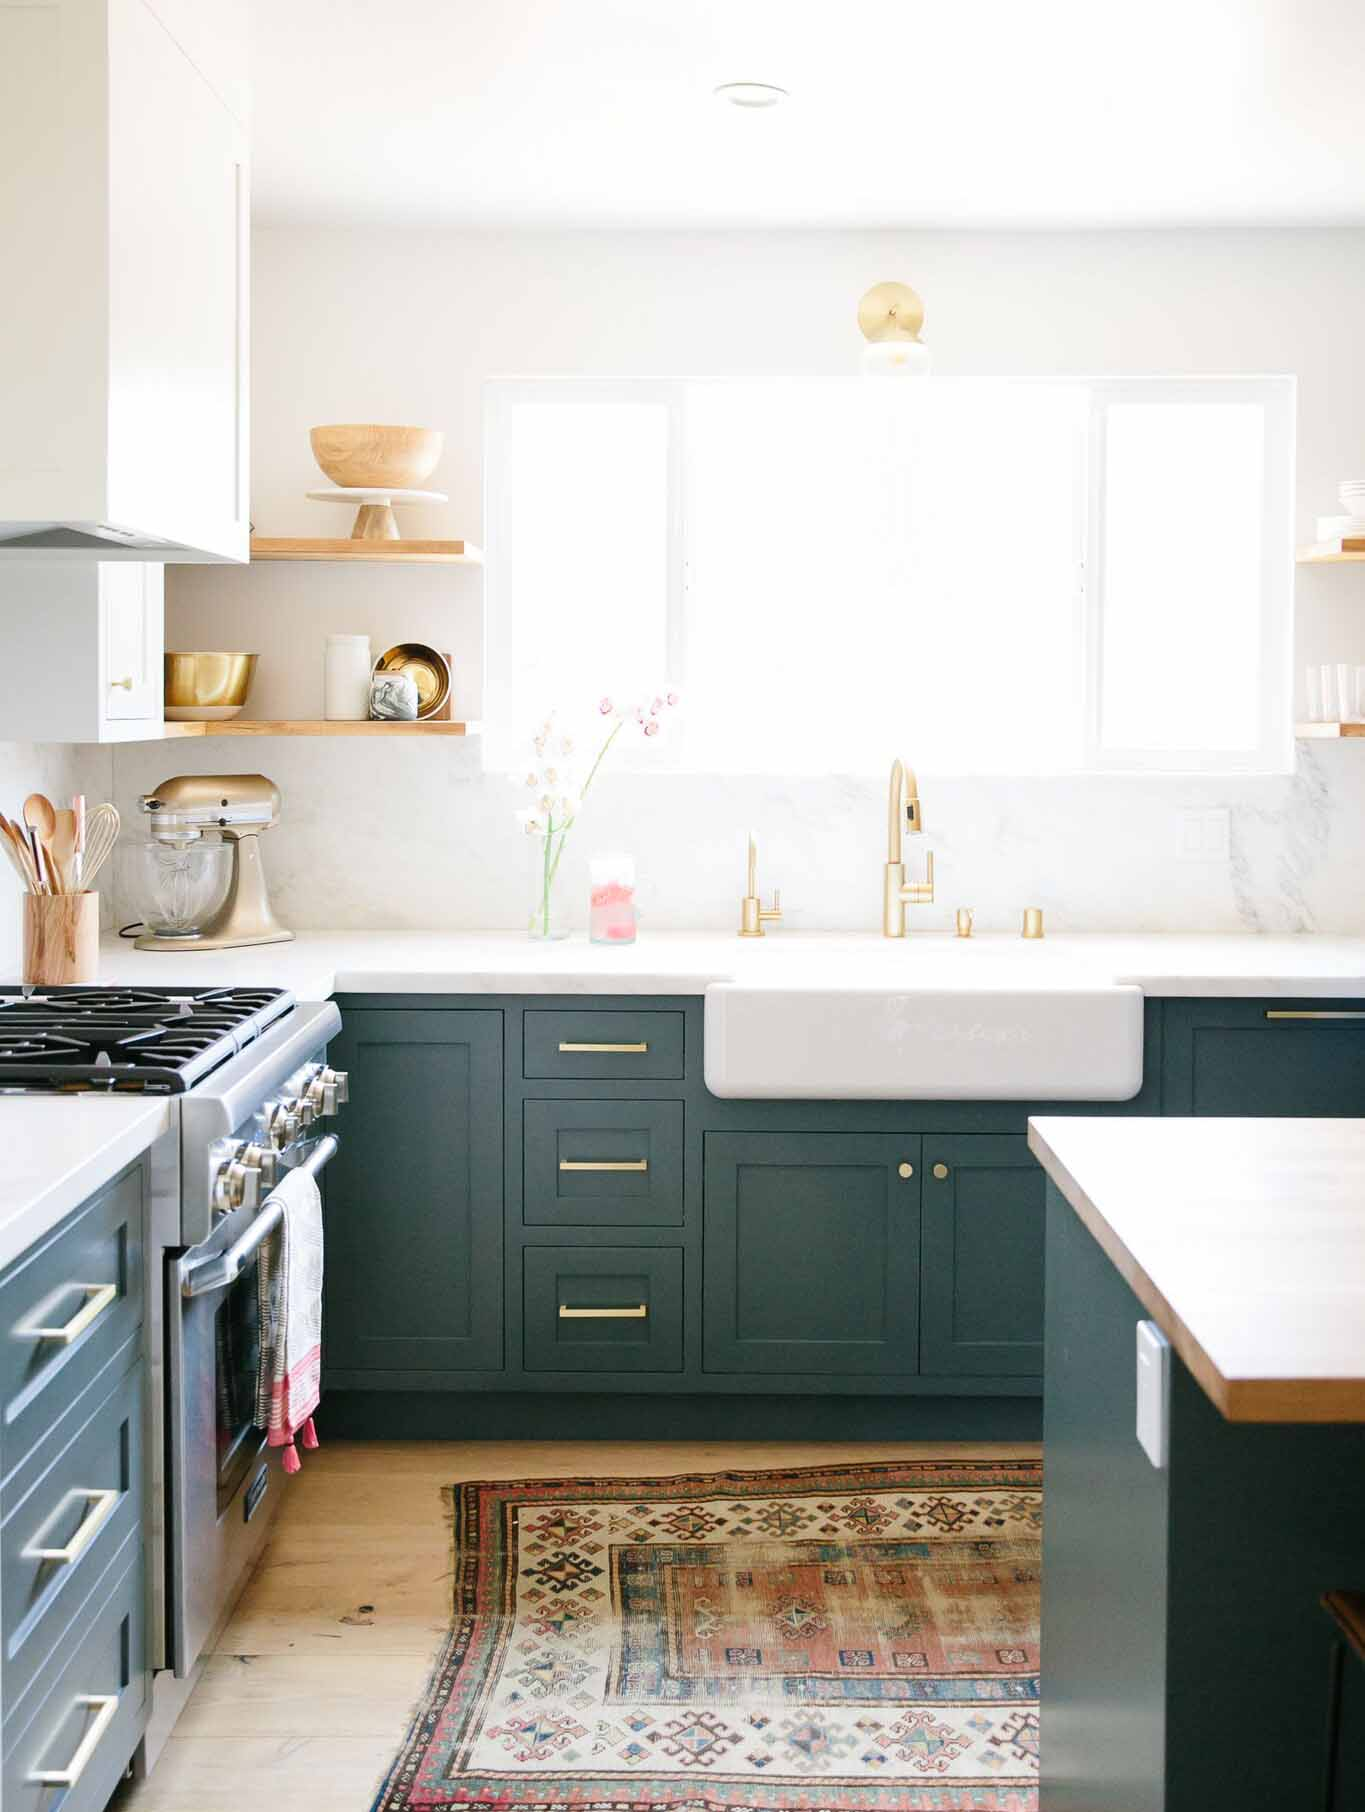 Kitchen Decor | Cabinet Inspiration